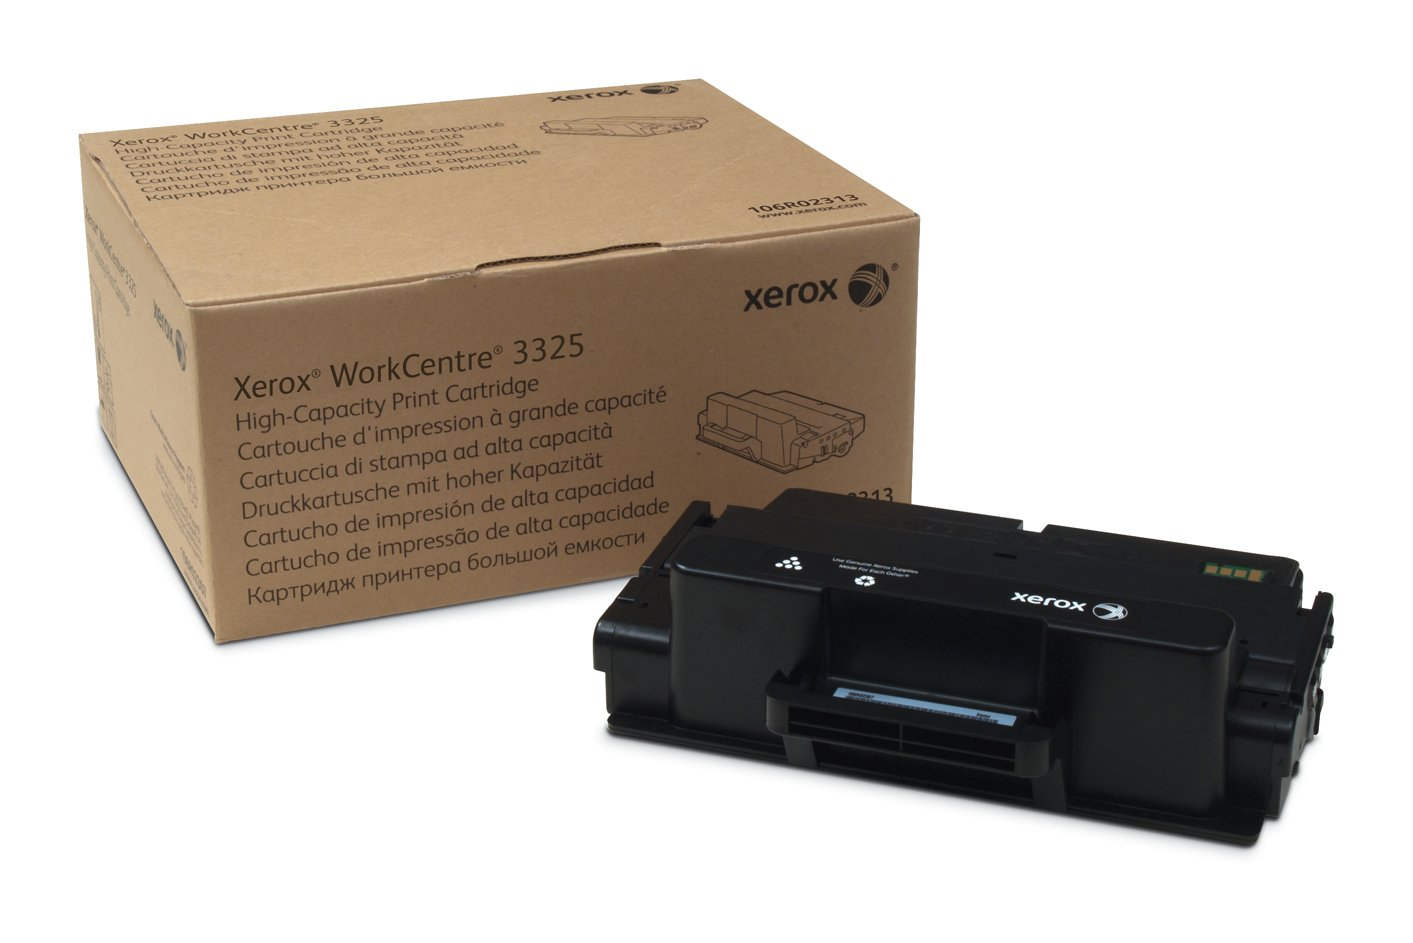 Genuine Xerox High Capacity Black Toner for the WorkCentre 3225, 106R02313